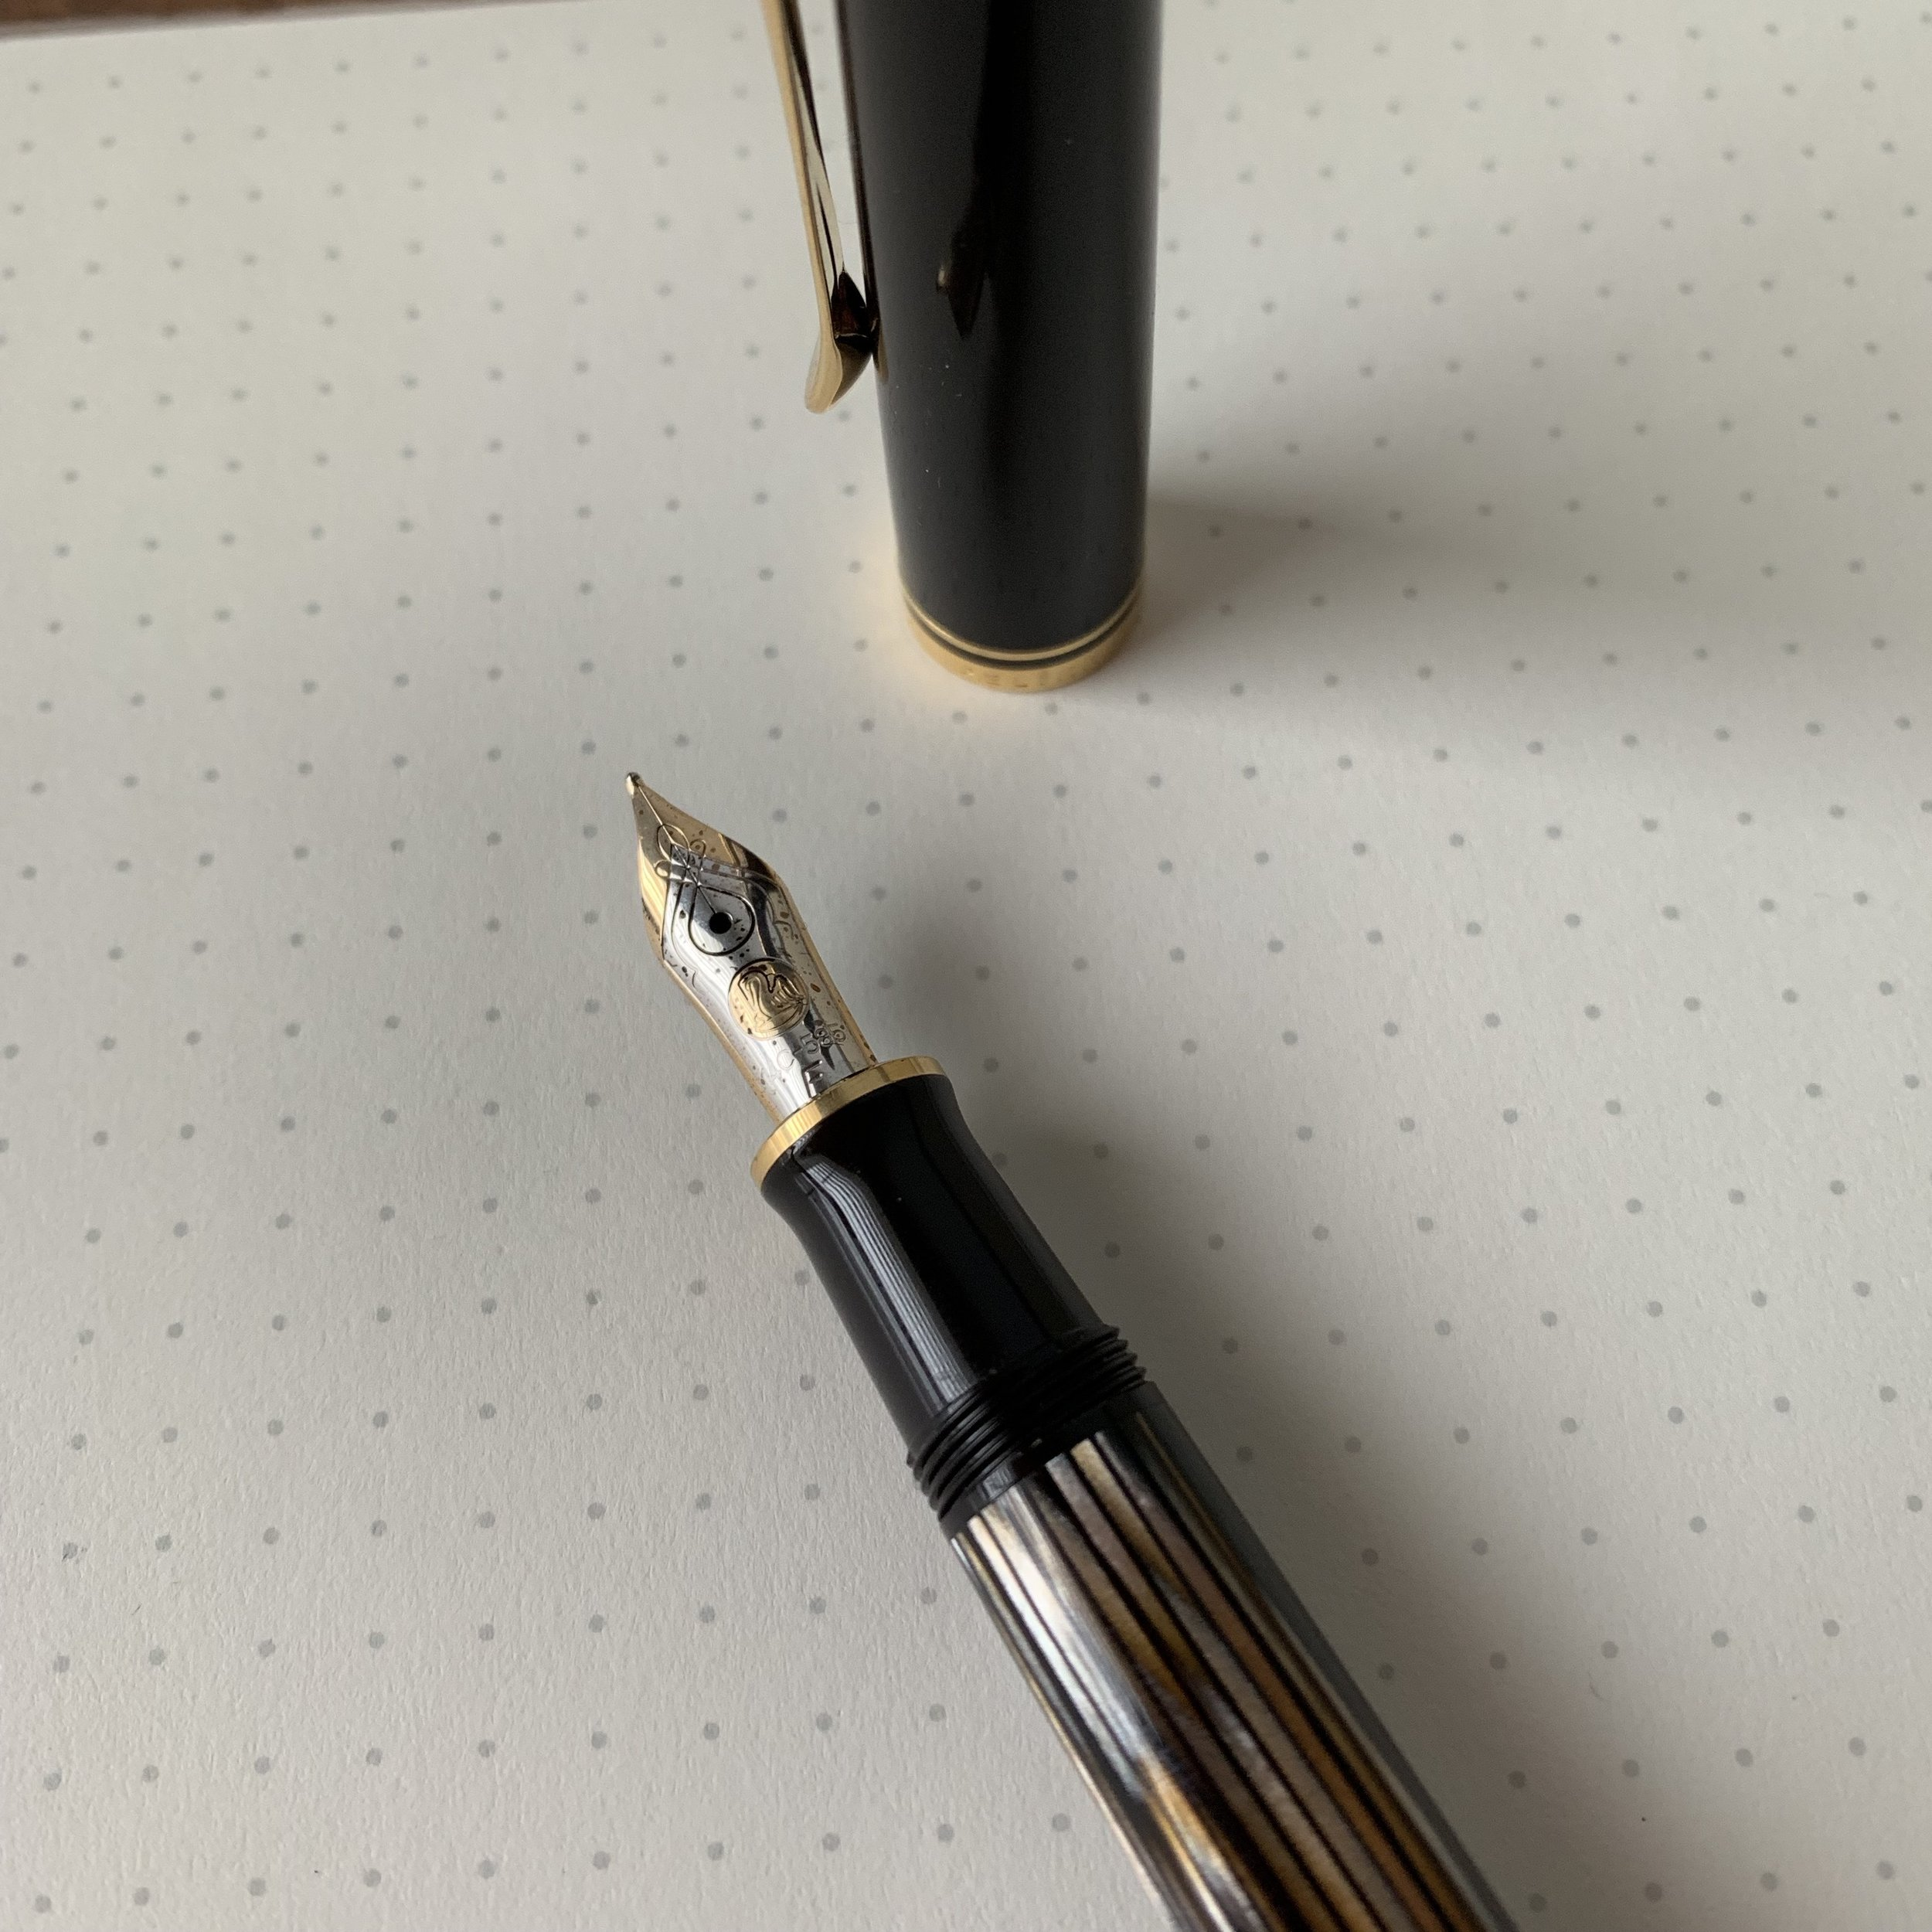 Pelikan nibs are among my favorite in terms of decorative scrollwork and brand logo.